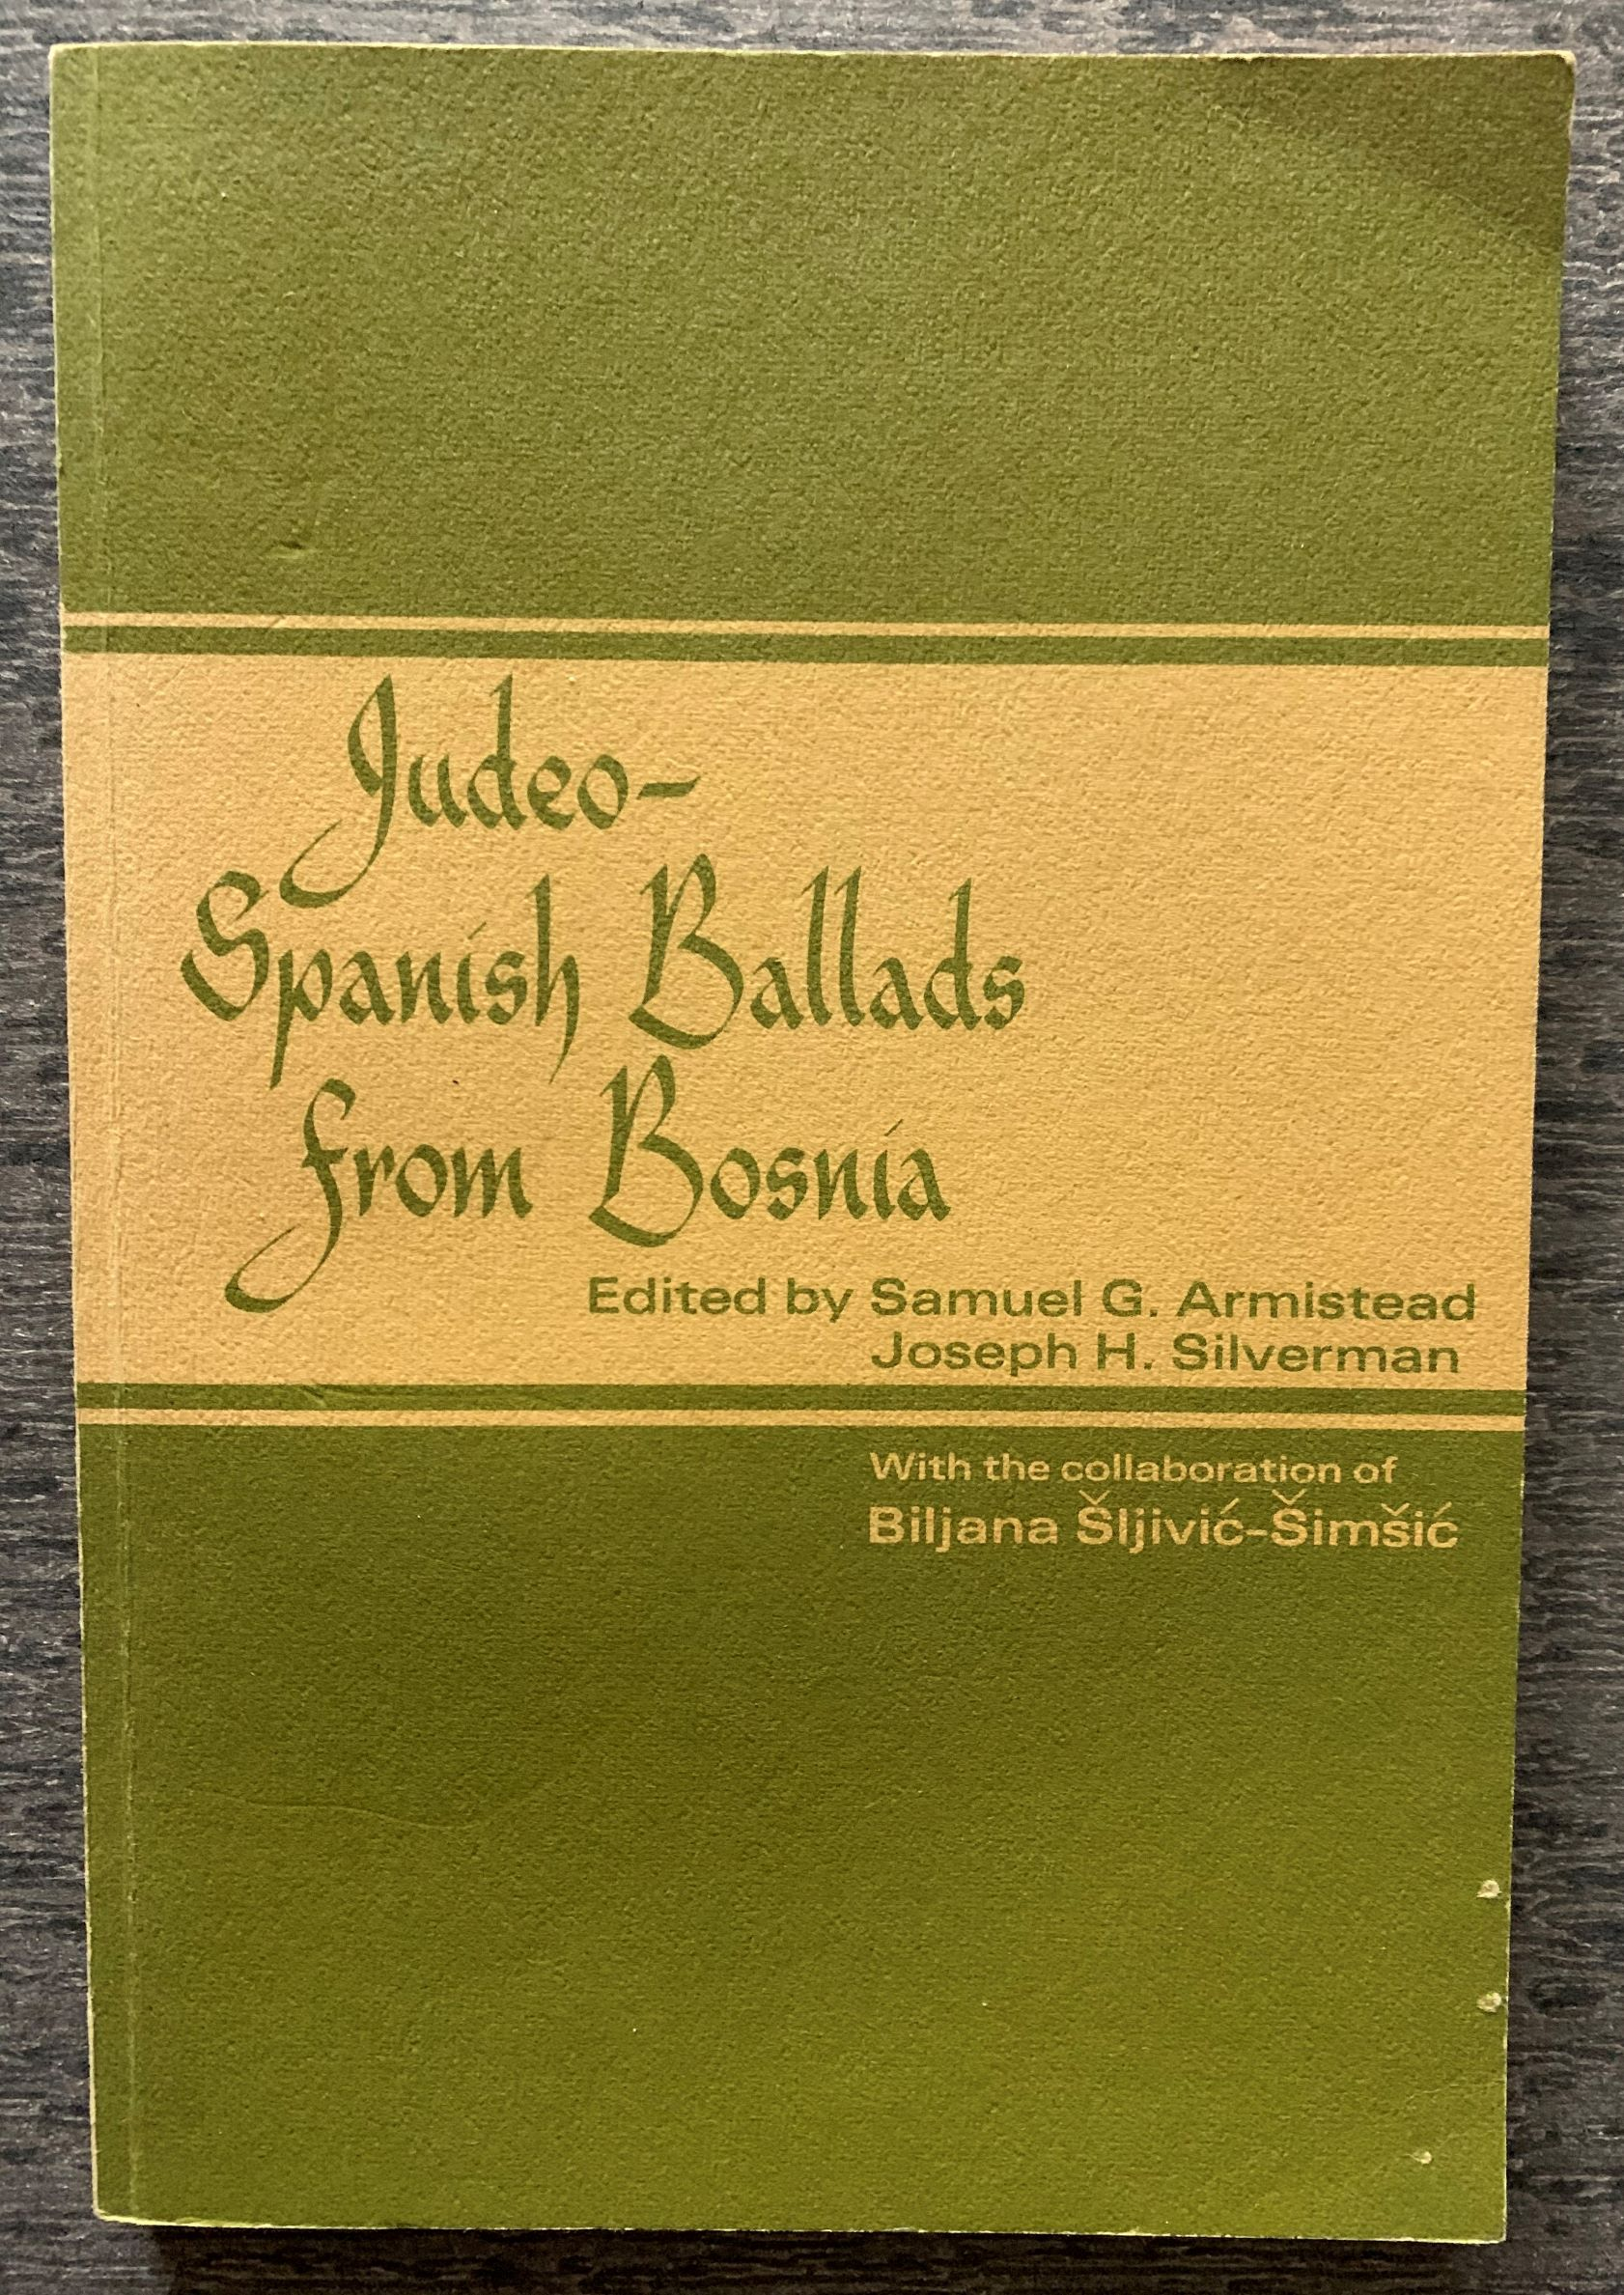 Image for Judeo-Spanish Ballads from Bosnia.  With the collaboration of Biljana Sljivic-Simsic.